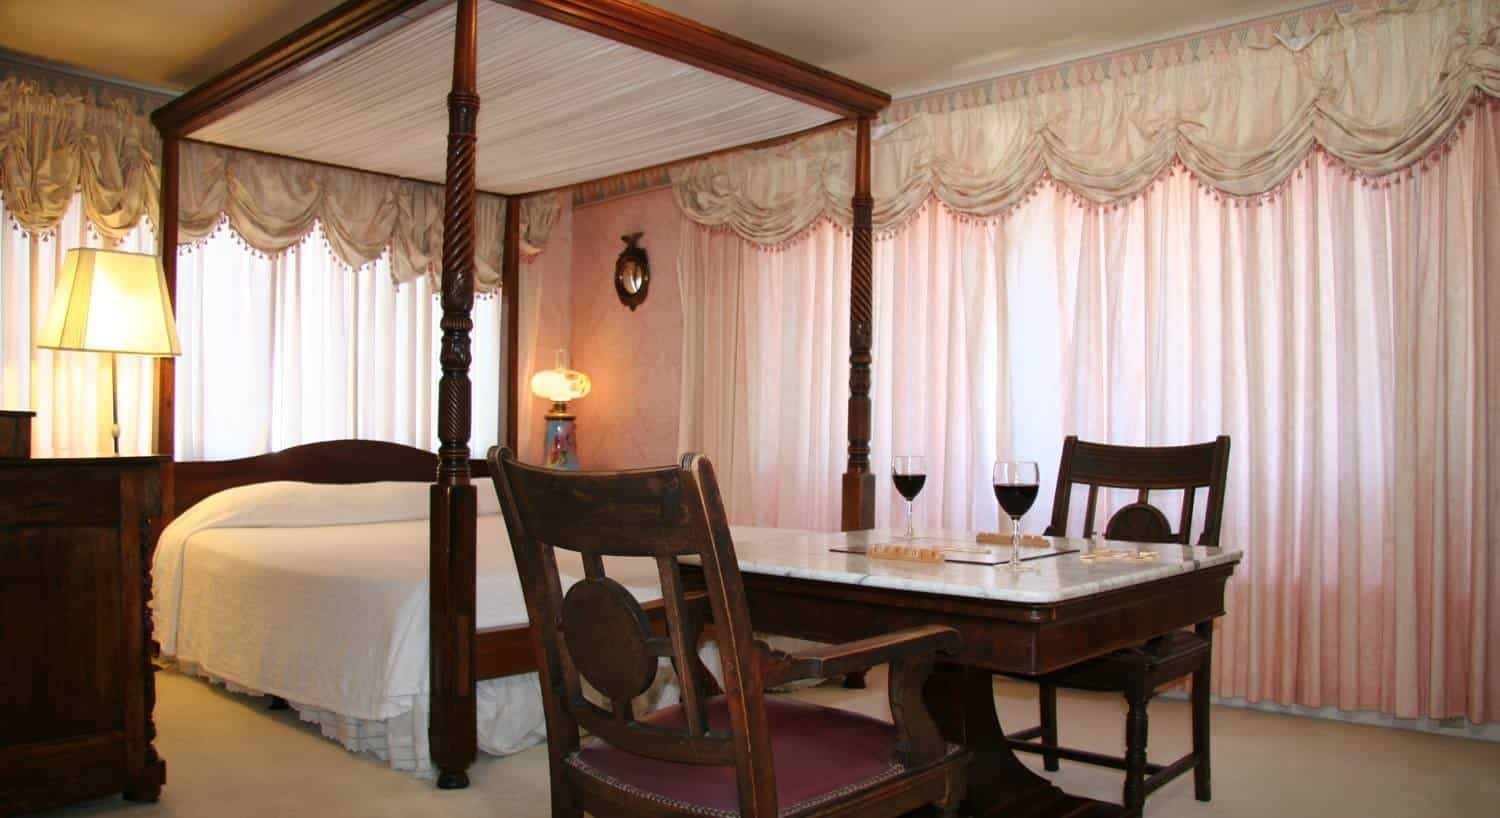 Empire guest room with several windows covered in pink sheers, wood four poster bed, marble-top table with two chairs